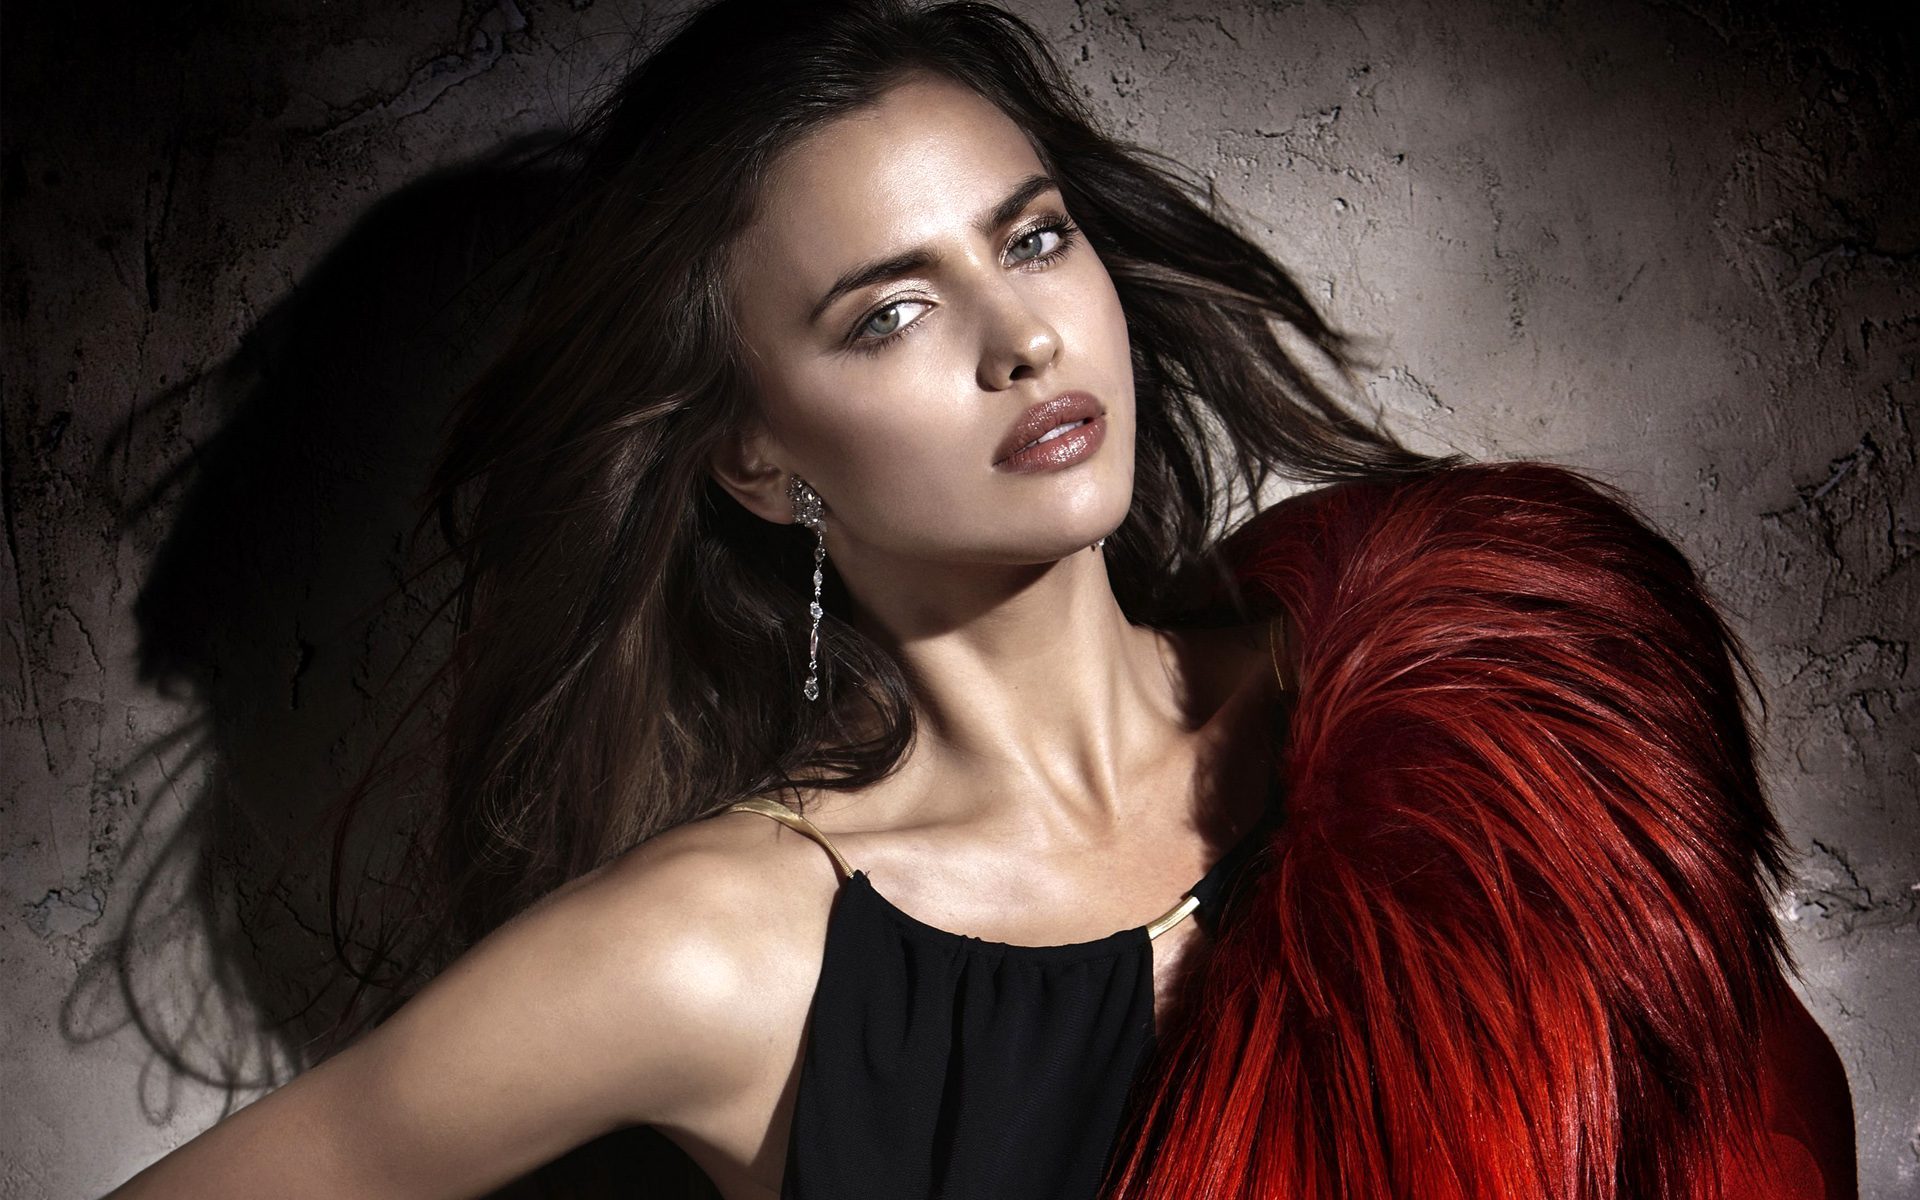 Irina Shayk 2015 wallpaper